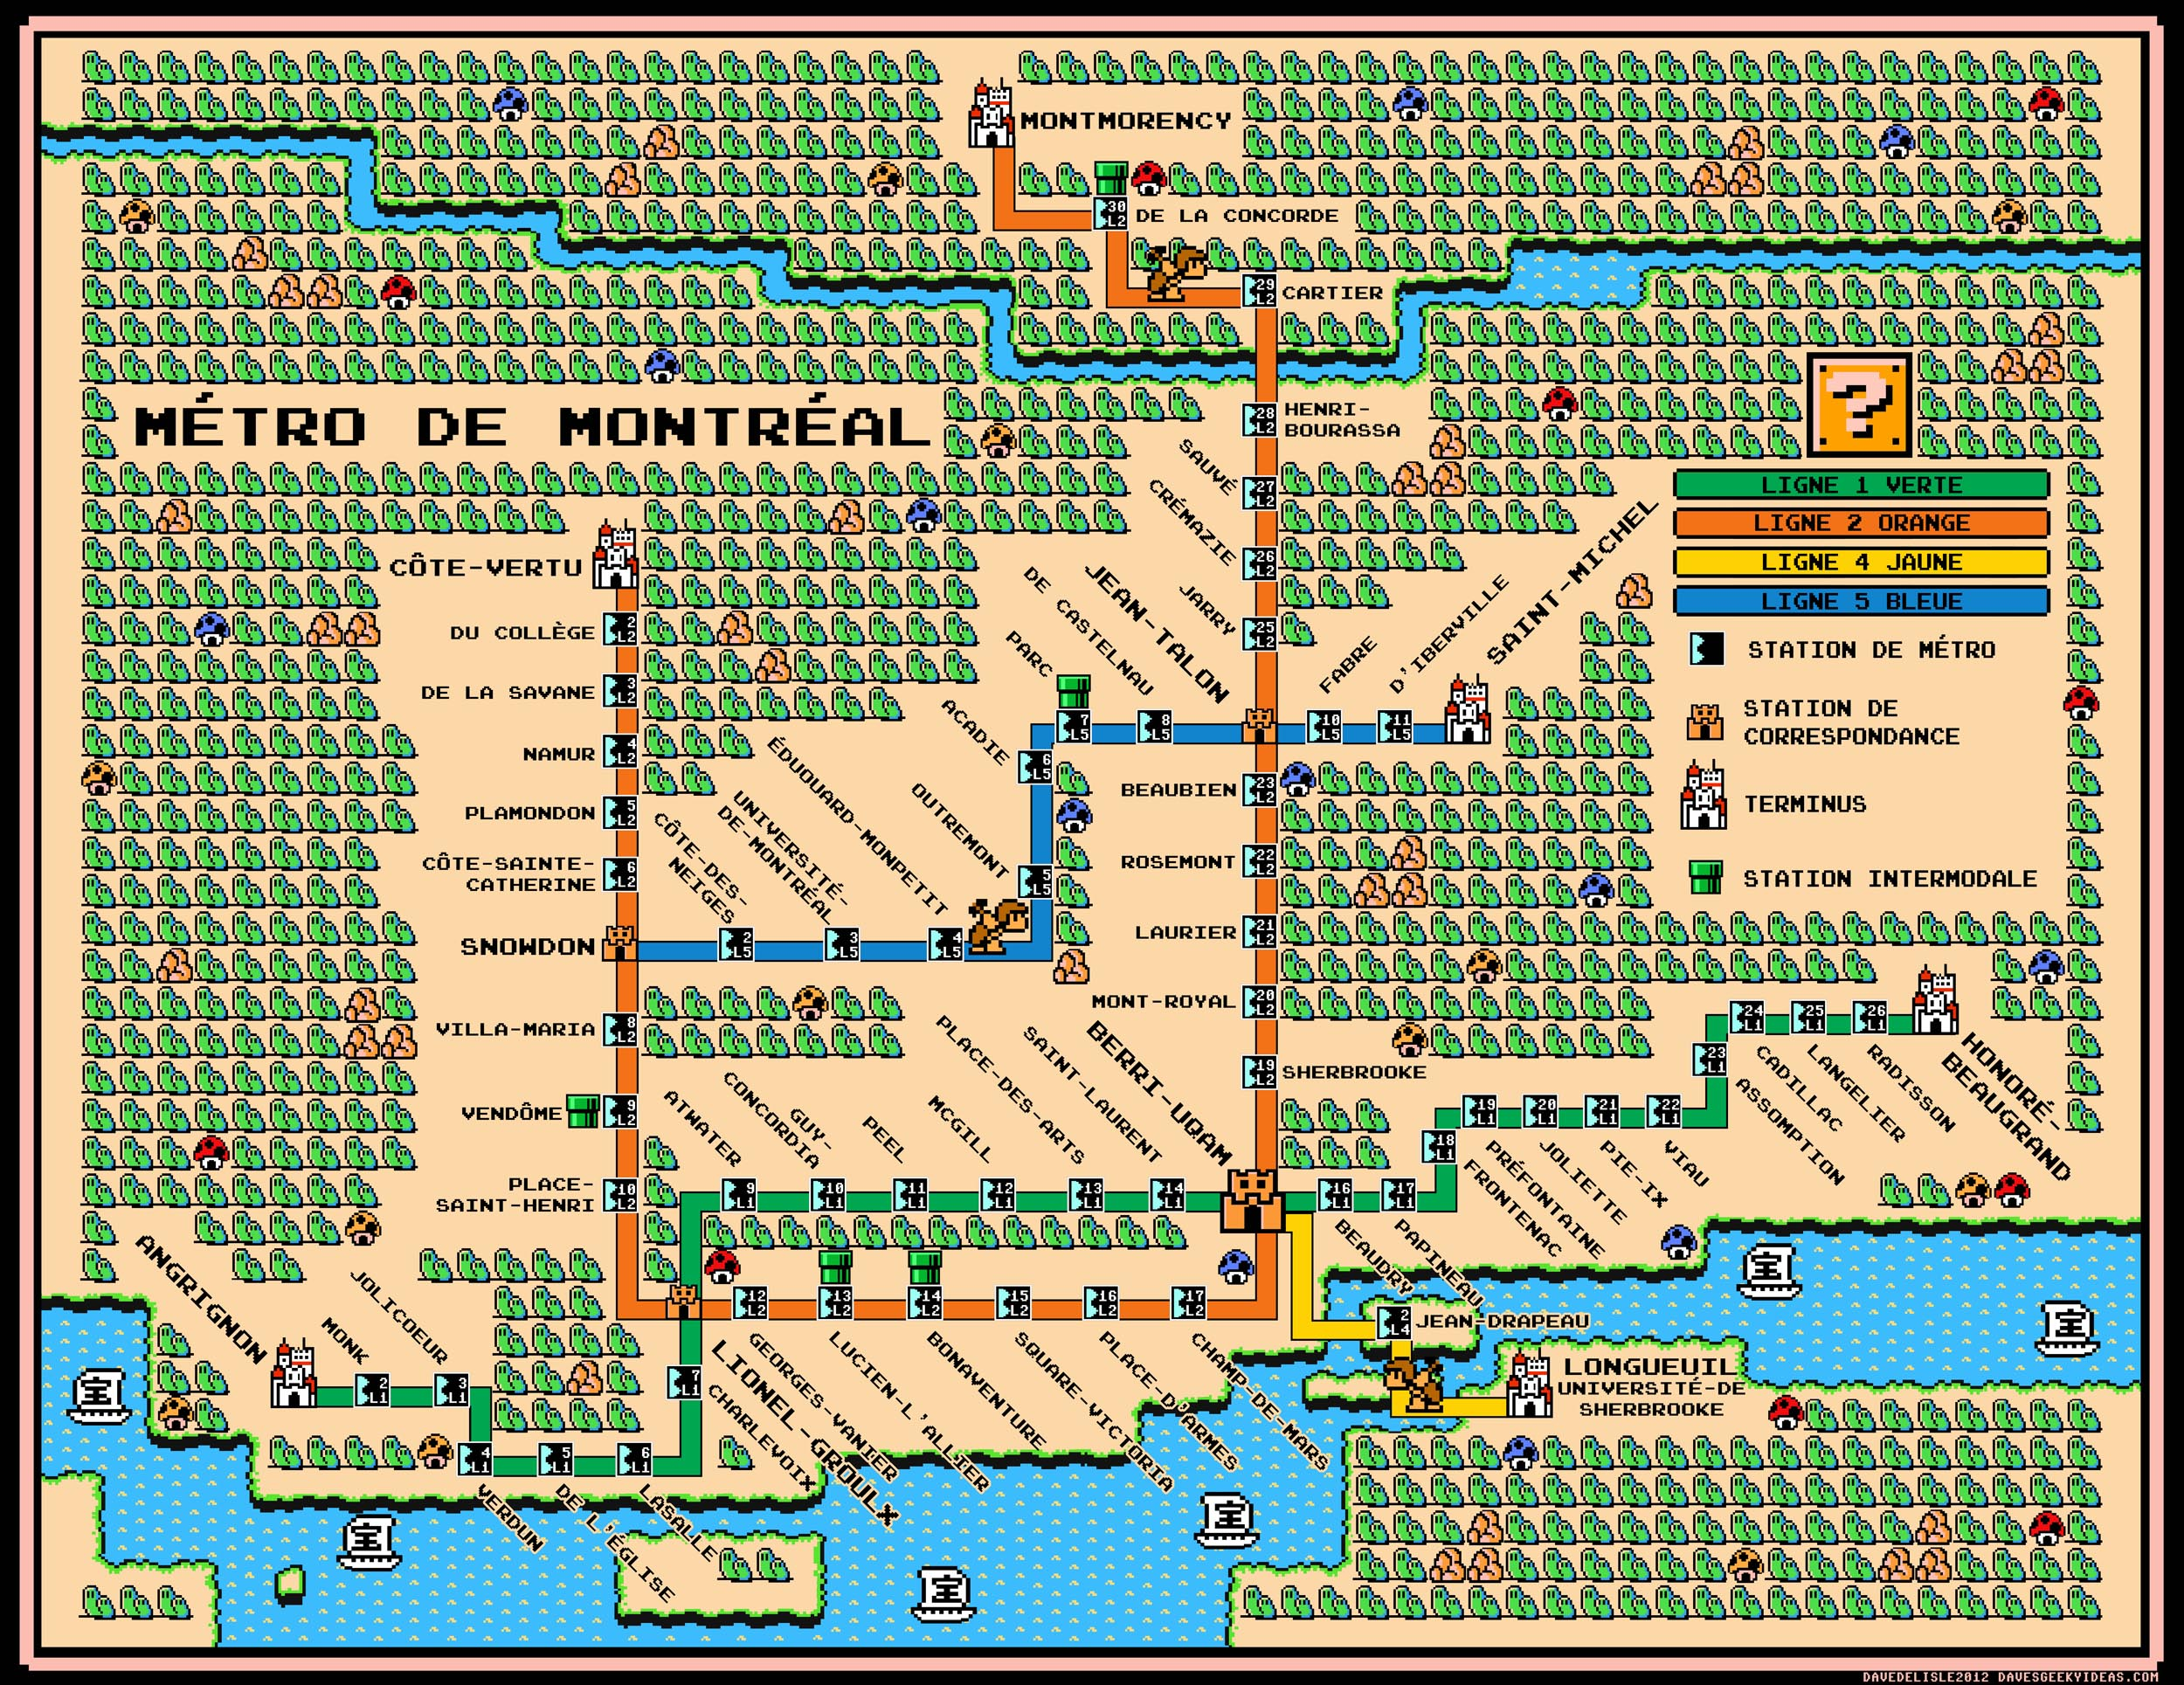 Montrela Subway Map.Montreal Metro Map Super Mario 3 Style Dave S Geeky Ideas